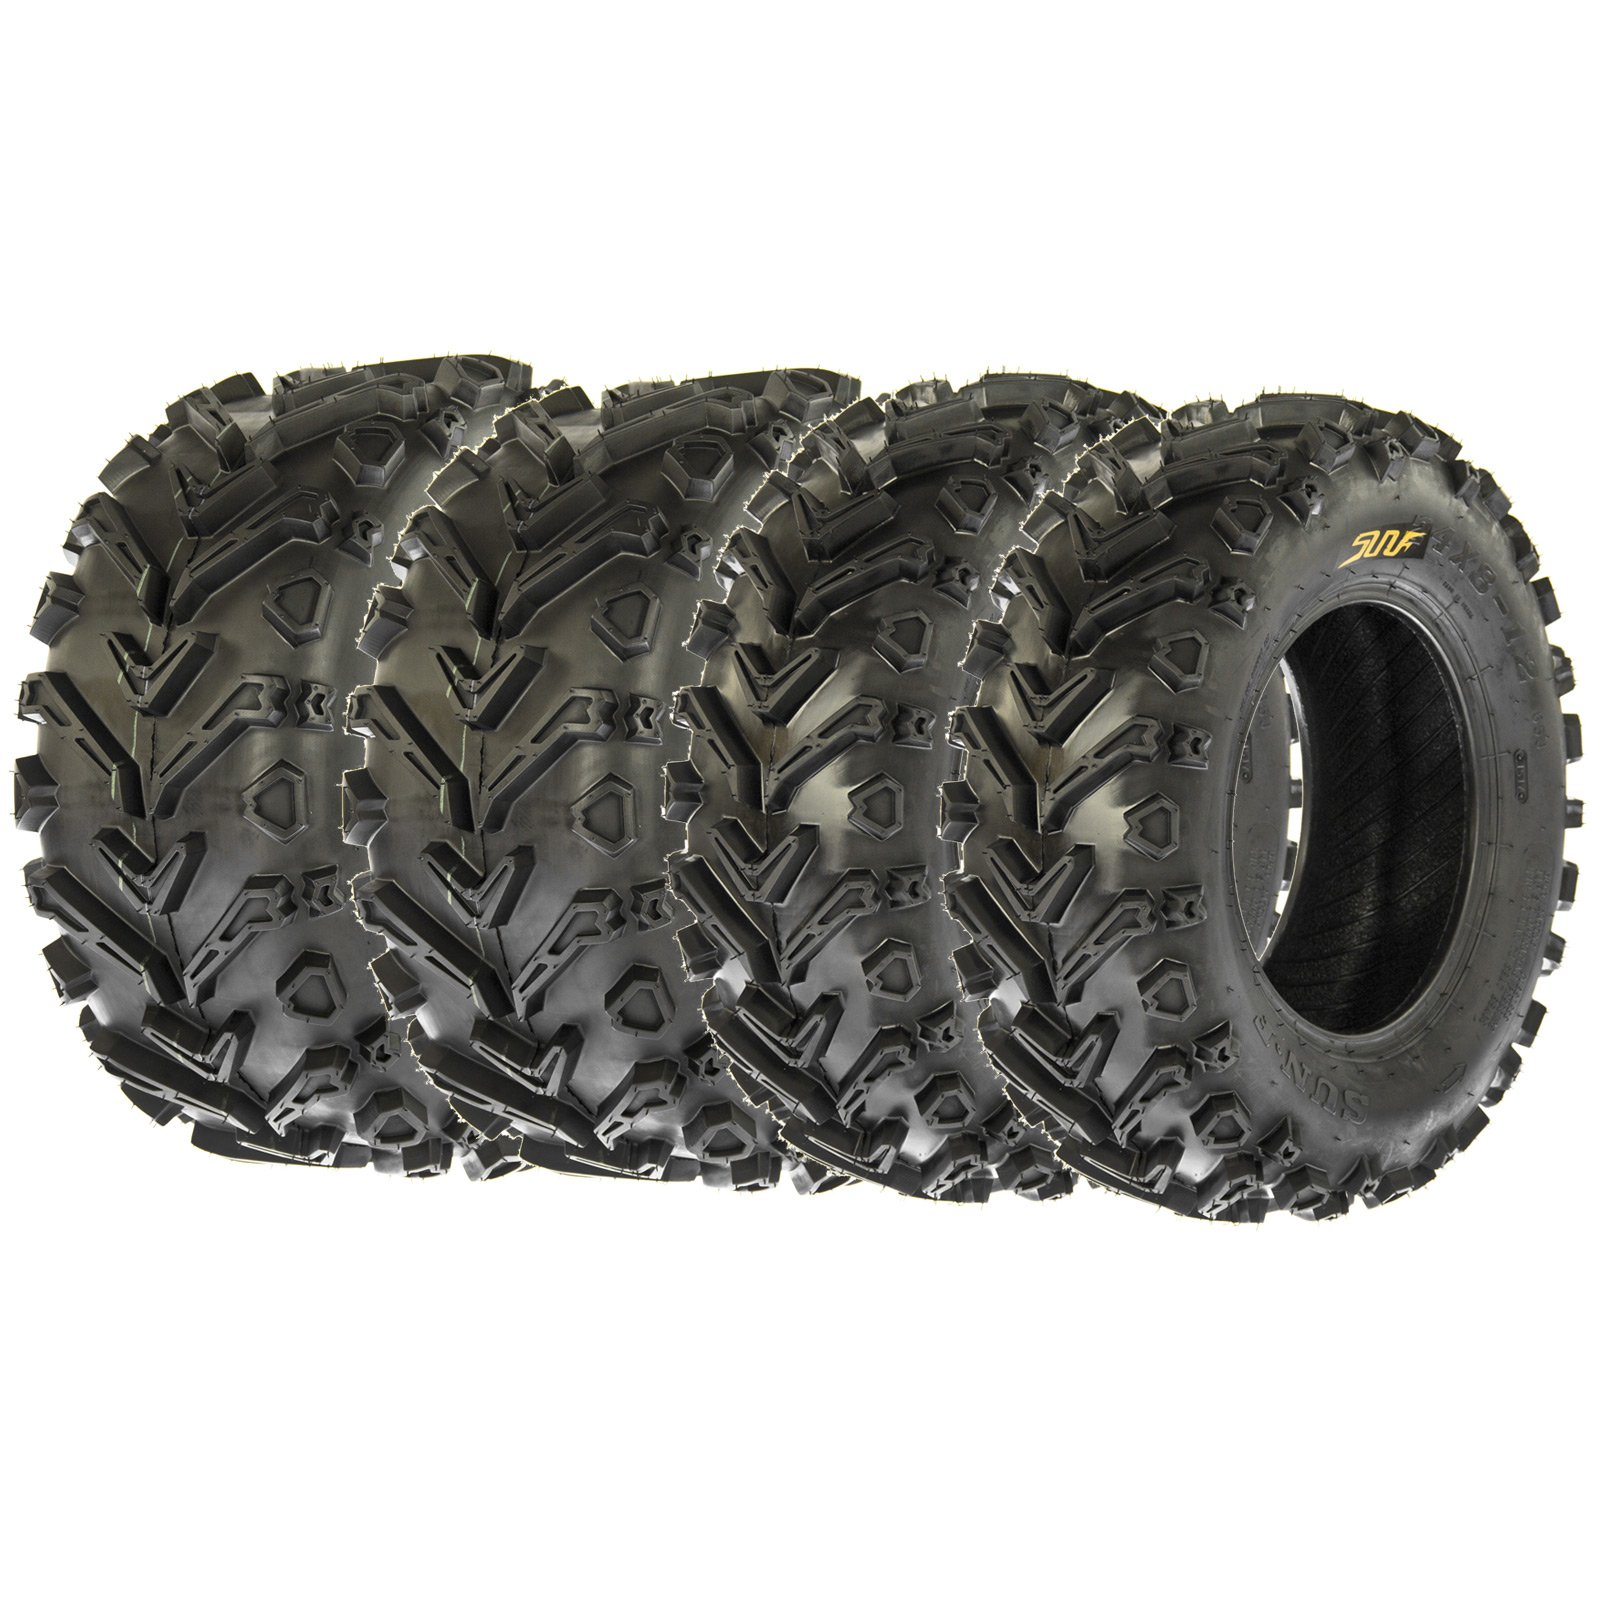 SunF All Trail & Mud ATV UTV Tires 24x8-12 24x10-11 6 PR A041 (Complete Full Set of 4)